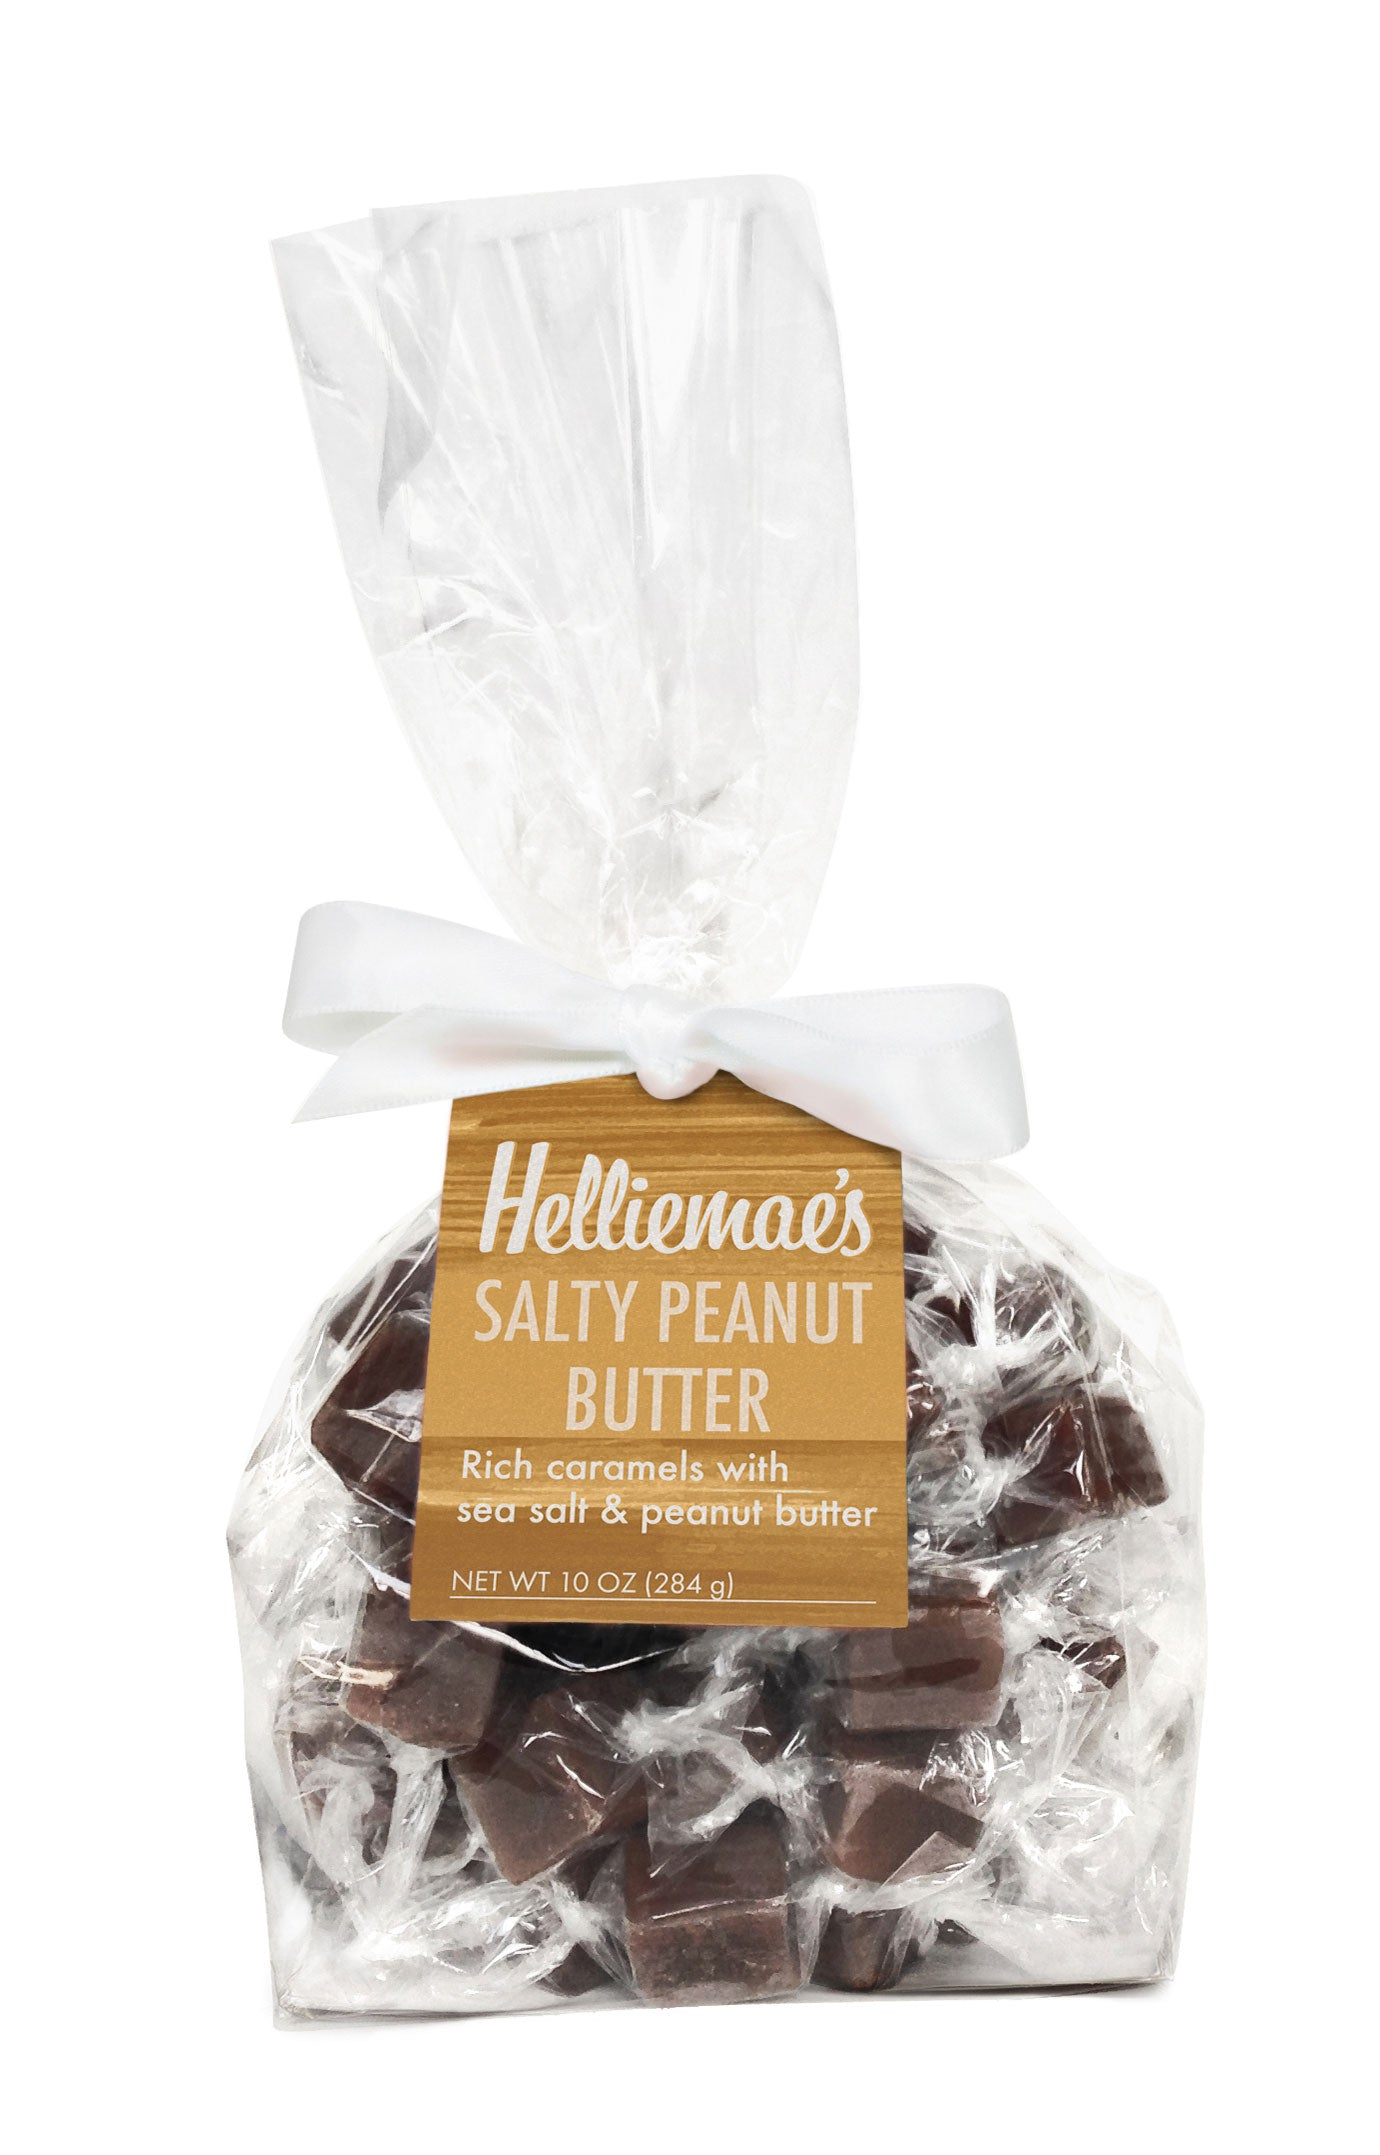 Helliemae's Salty Peanut Butter Caramels large gift bag, clear cello bag with gathered top, fastened with white satin ribbon and colorful tan hangtag, with effect of milk paint on a barn wall.